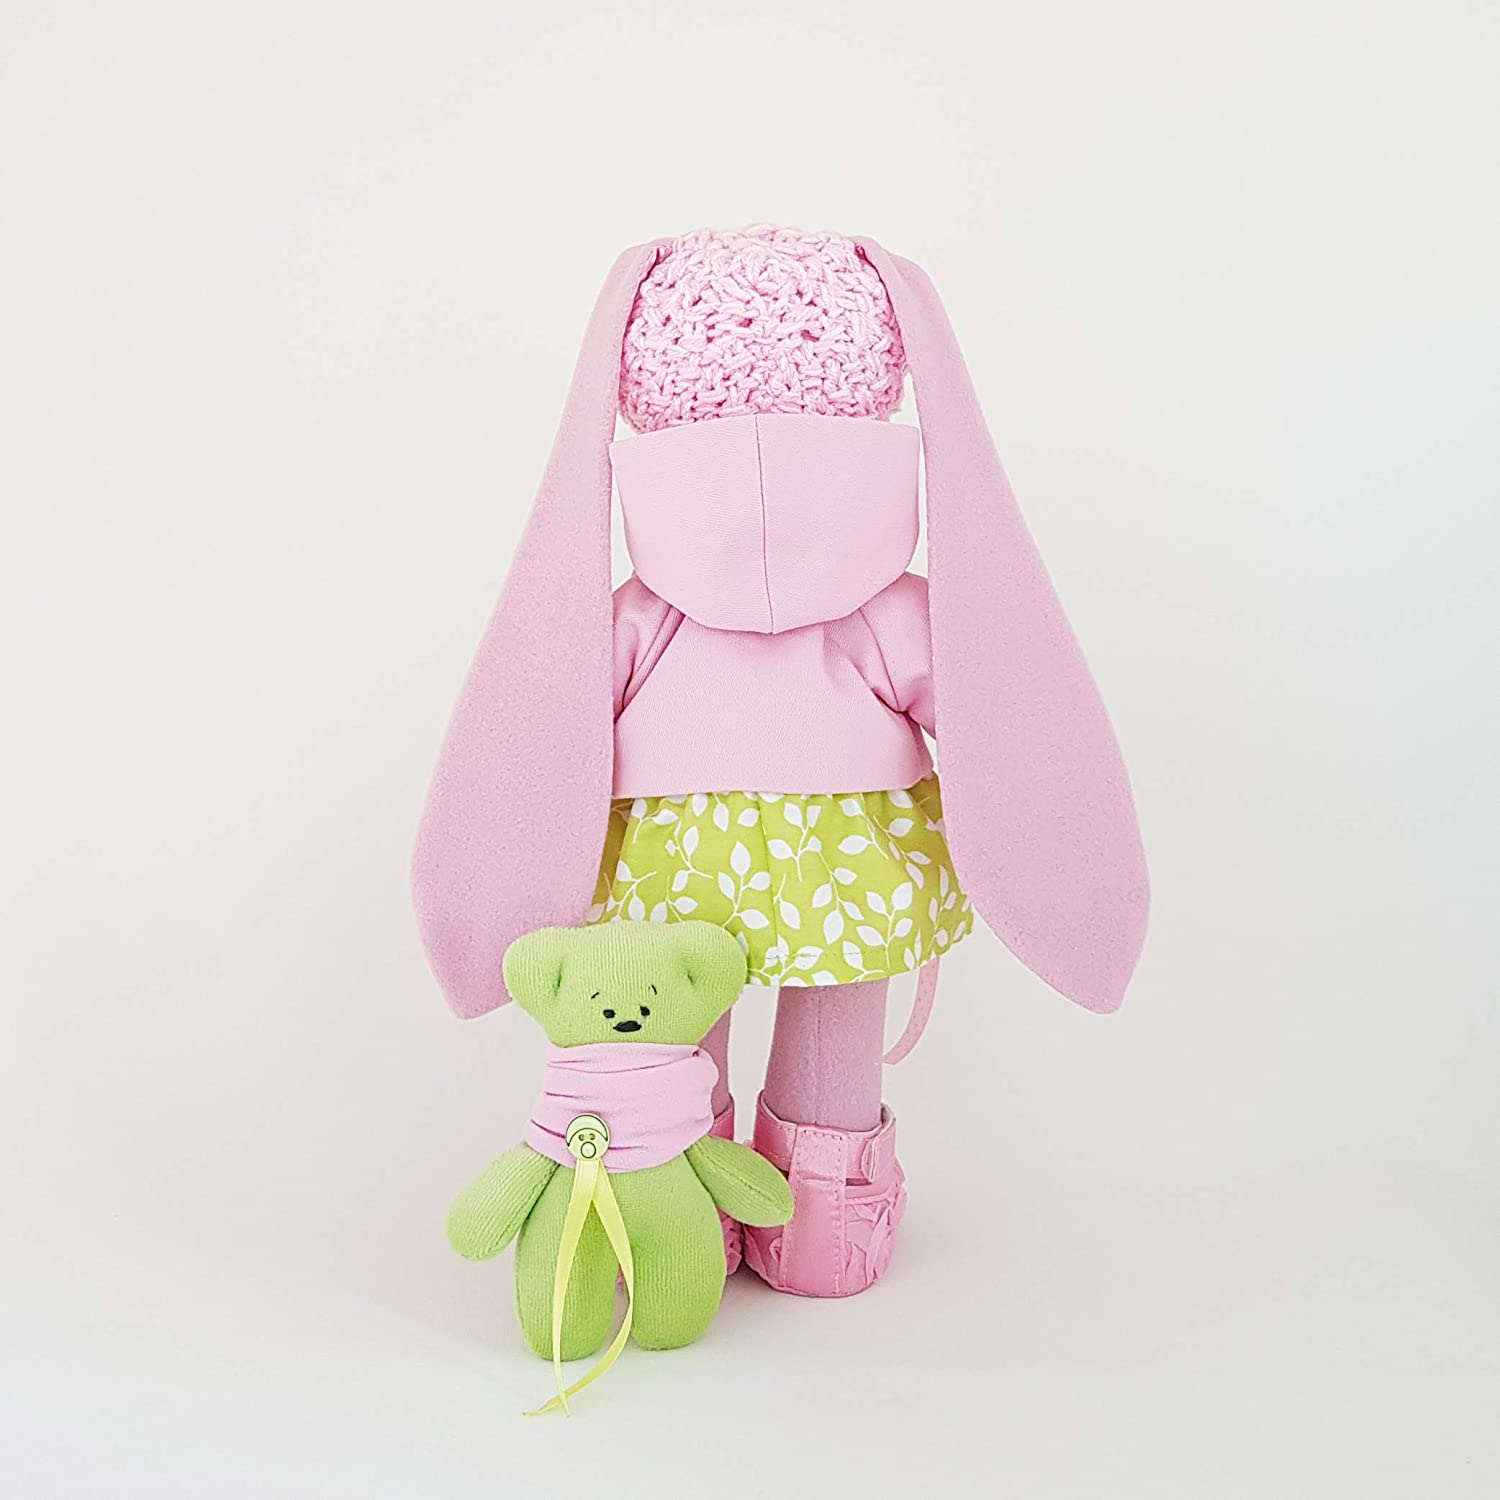 Extra set of clothes for girl doll 14.5 clothes fits for toys ZuzuHappyToys